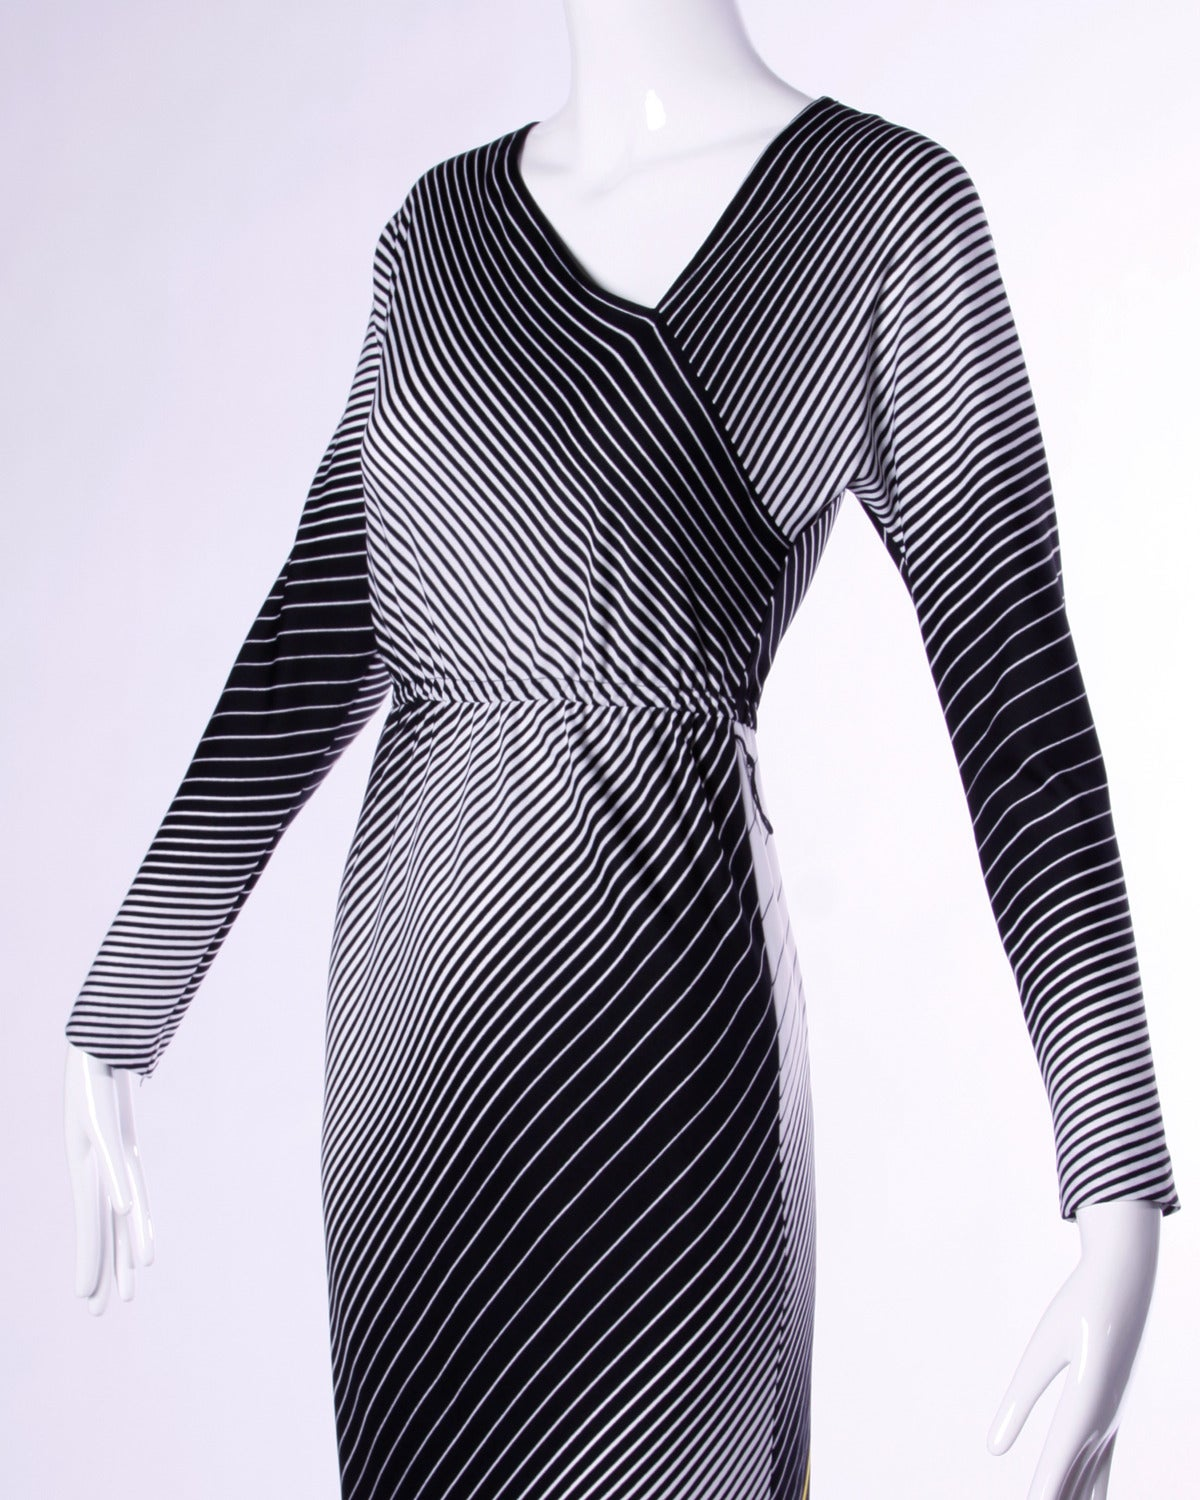 Victor Costa Vintage 1970s Op Art Print Black + White Striped Maxi Dress In Excellent Condition For Sale In Sparks, NV